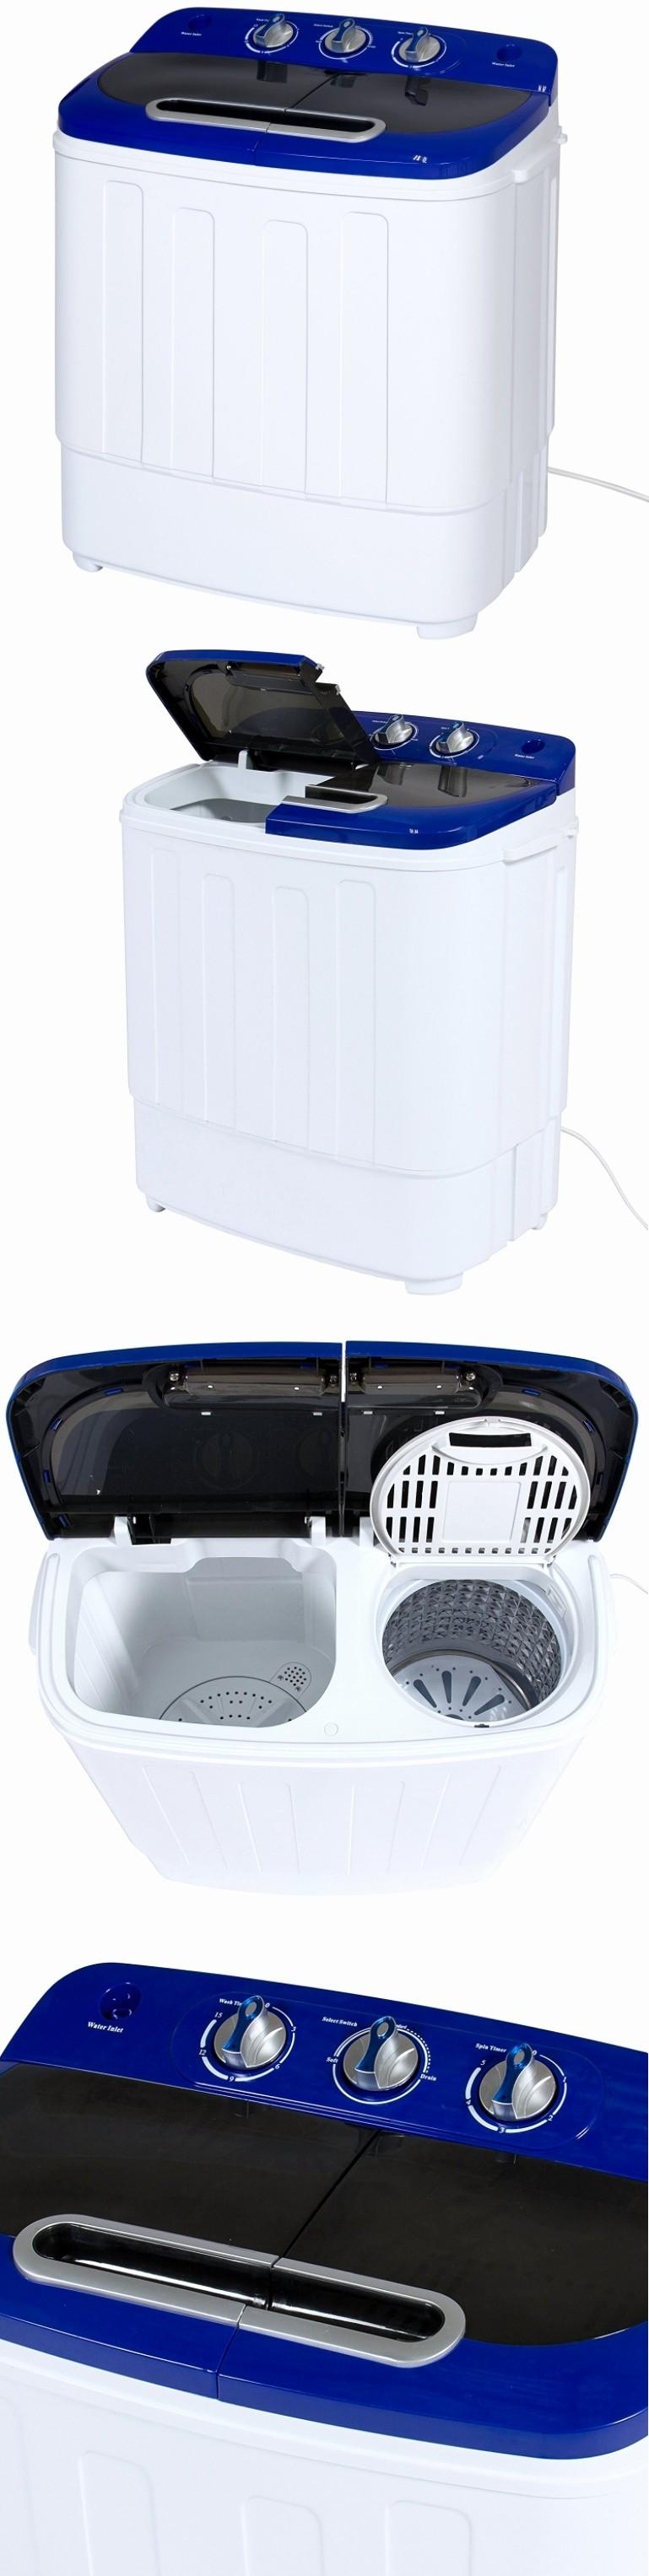 Portable Washer Dryer Combo Apartments Fresh